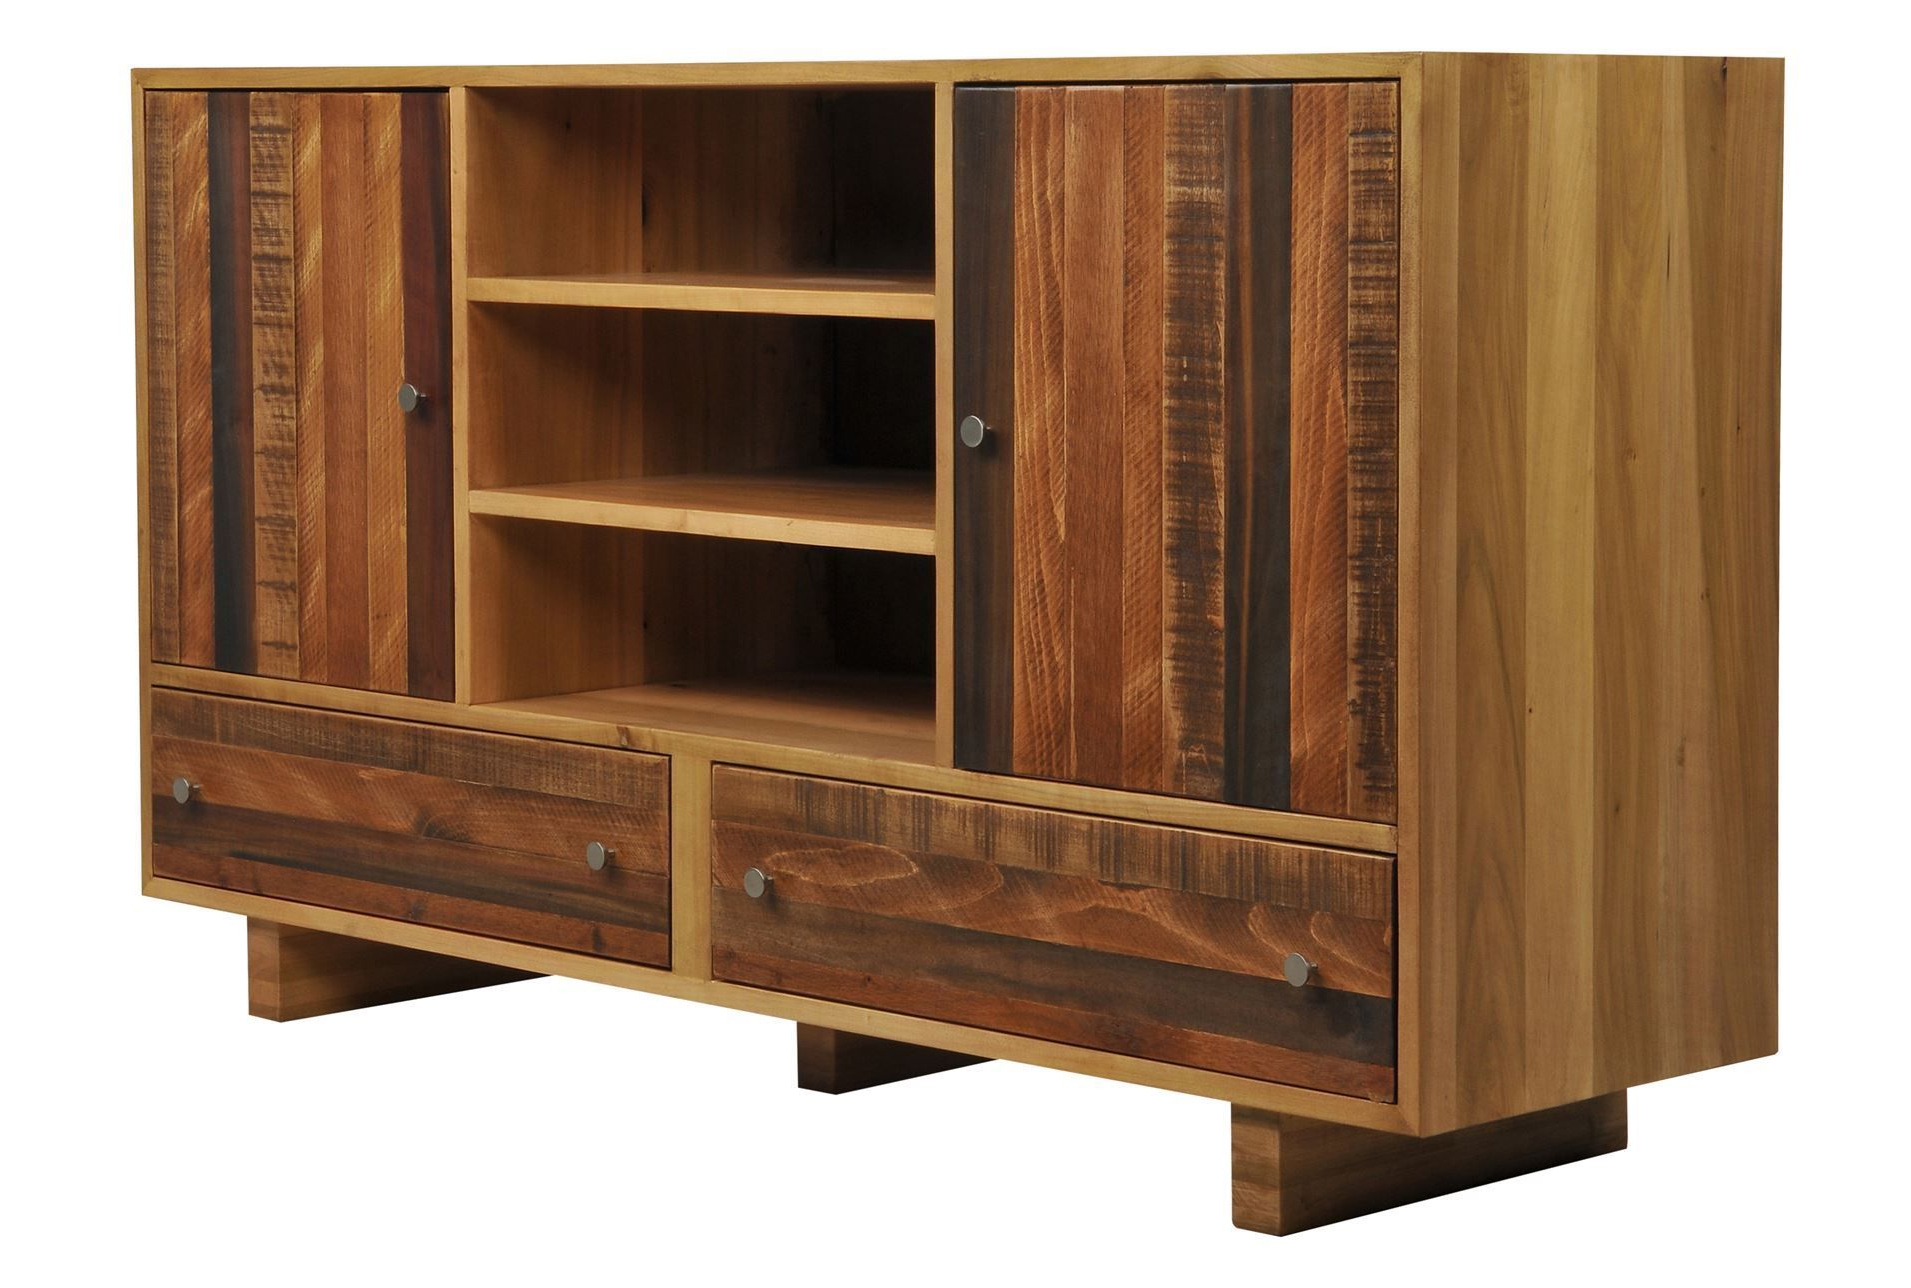 Everett 64 Inch Tv Console | Living Spaces | Pinterest | Consoles Inside Sinclair White 54 Inch Tv Stands (View 17 of 20)